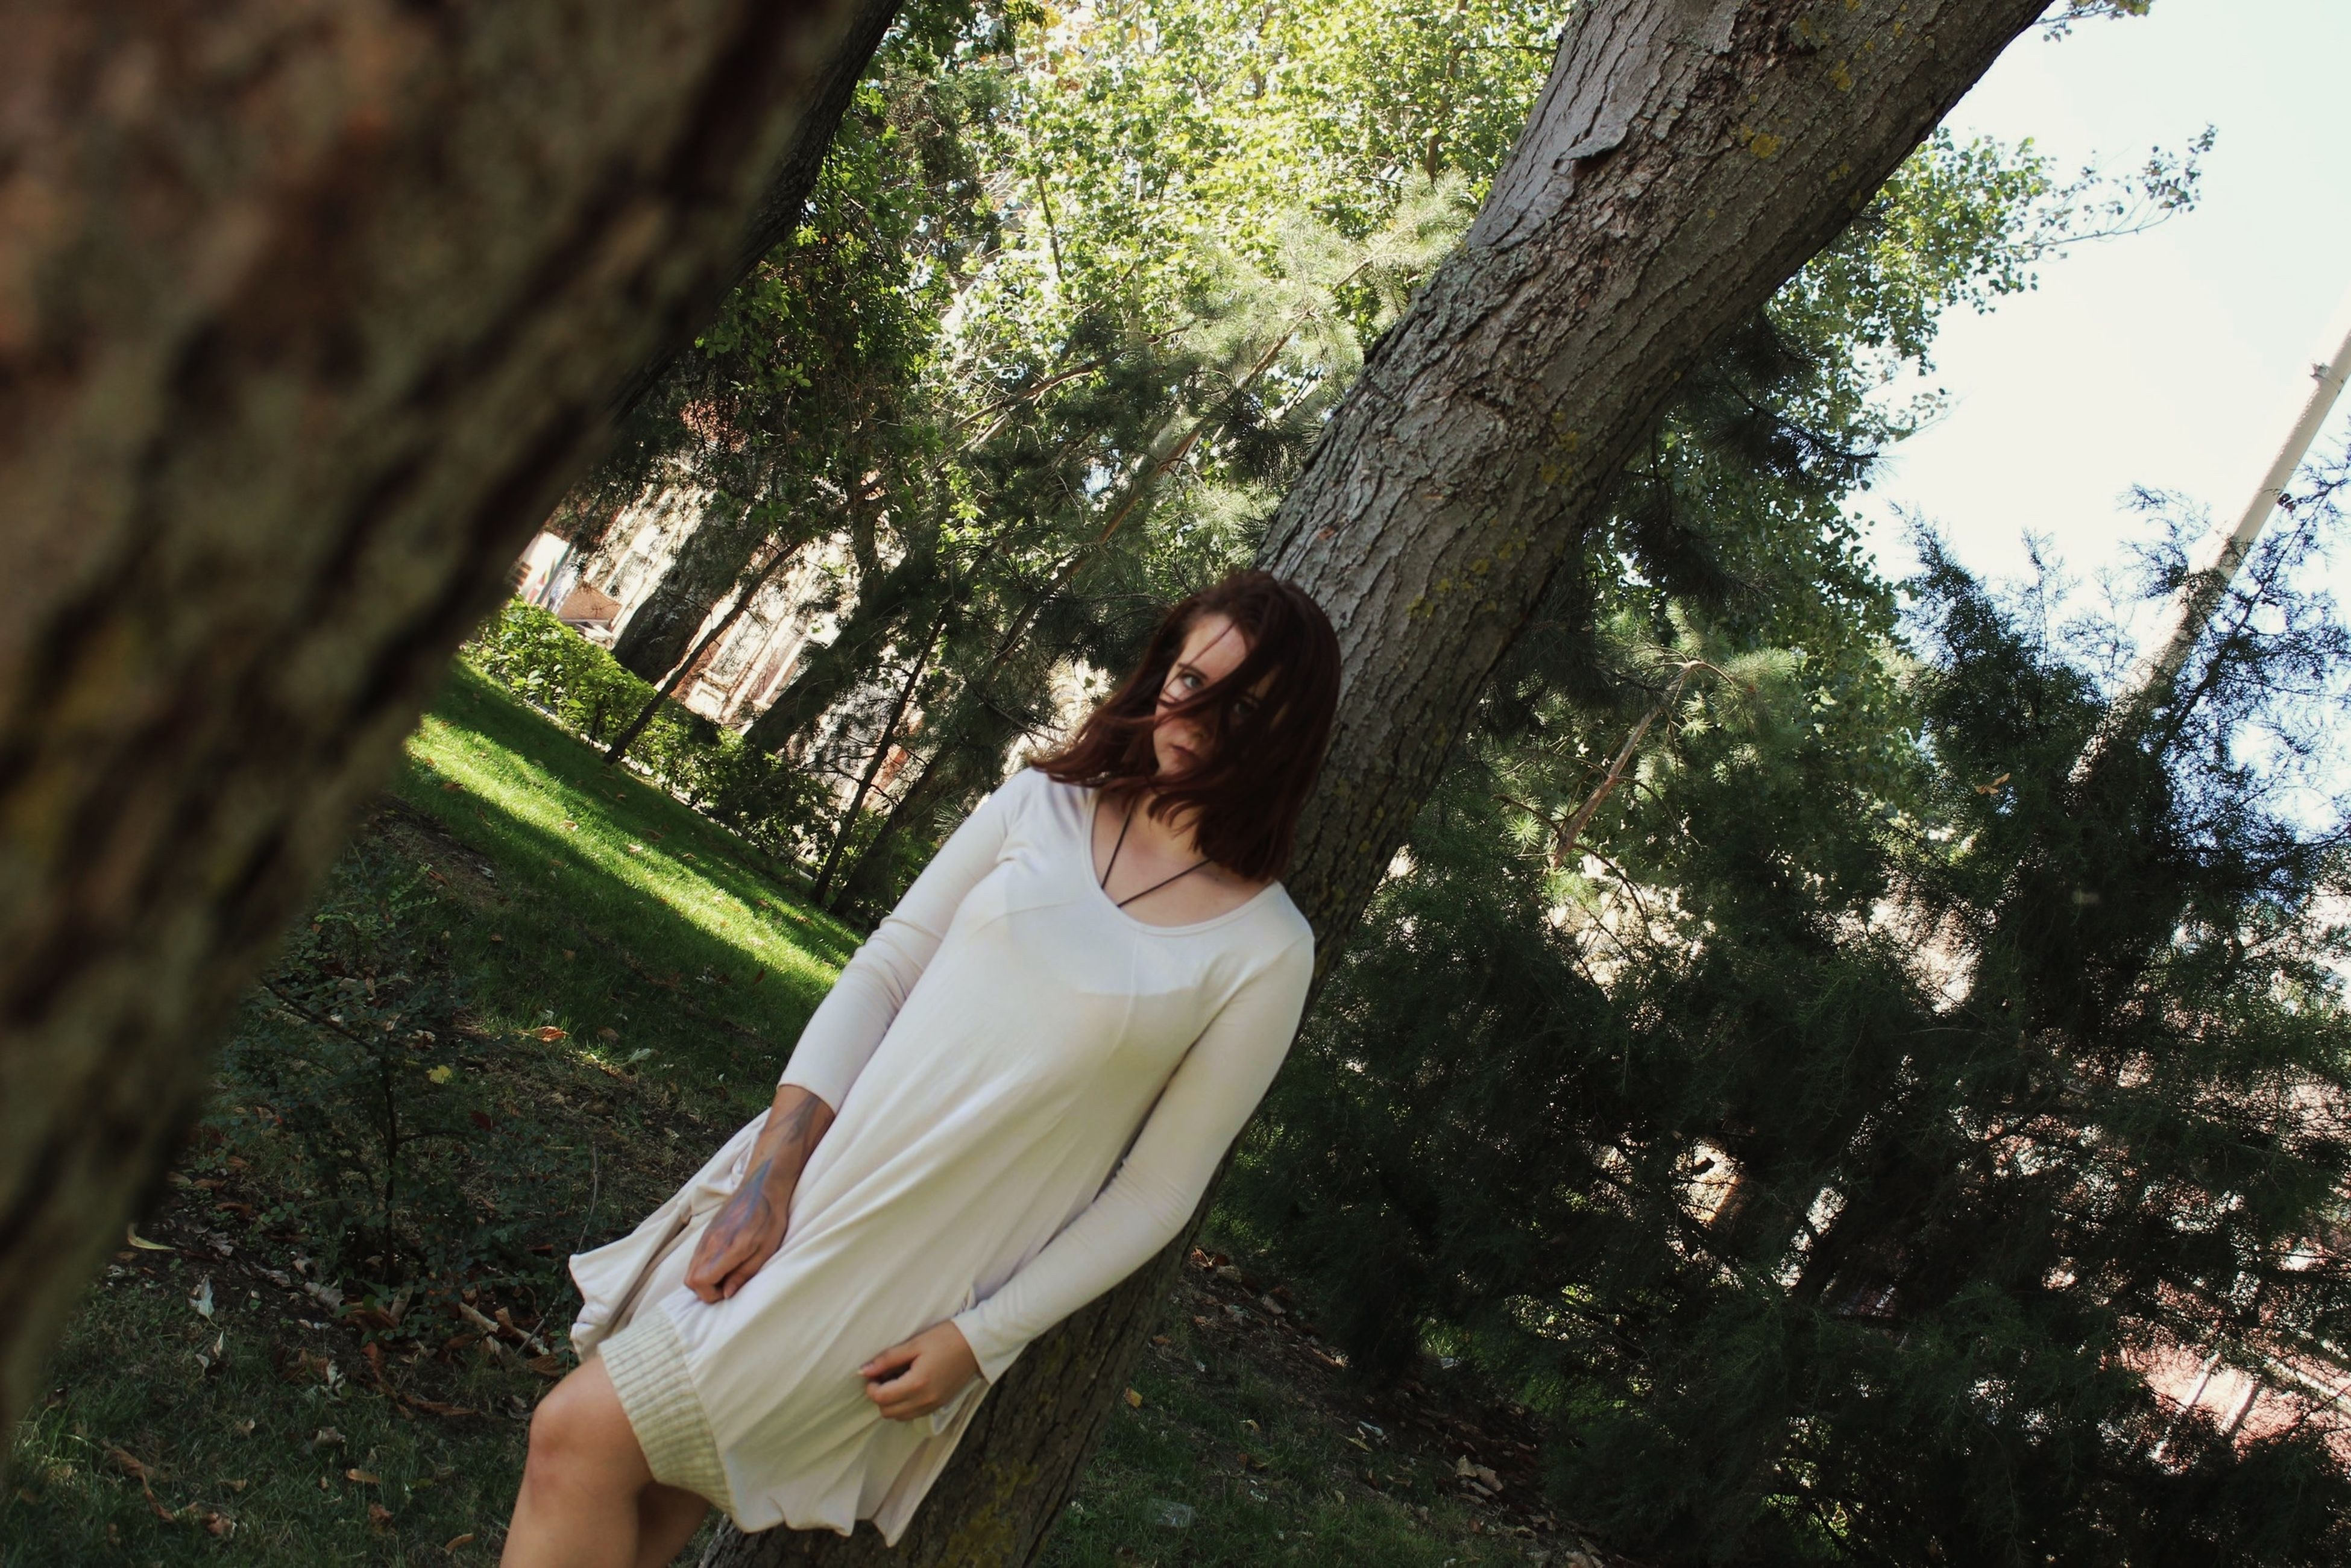 tree, tree trunk, lifestyles, leisure activity, young adult, young women, forest, person, growth, sitting, branch, casual clothing, three quarter length, nature, day, holding, outdoors, relaxation